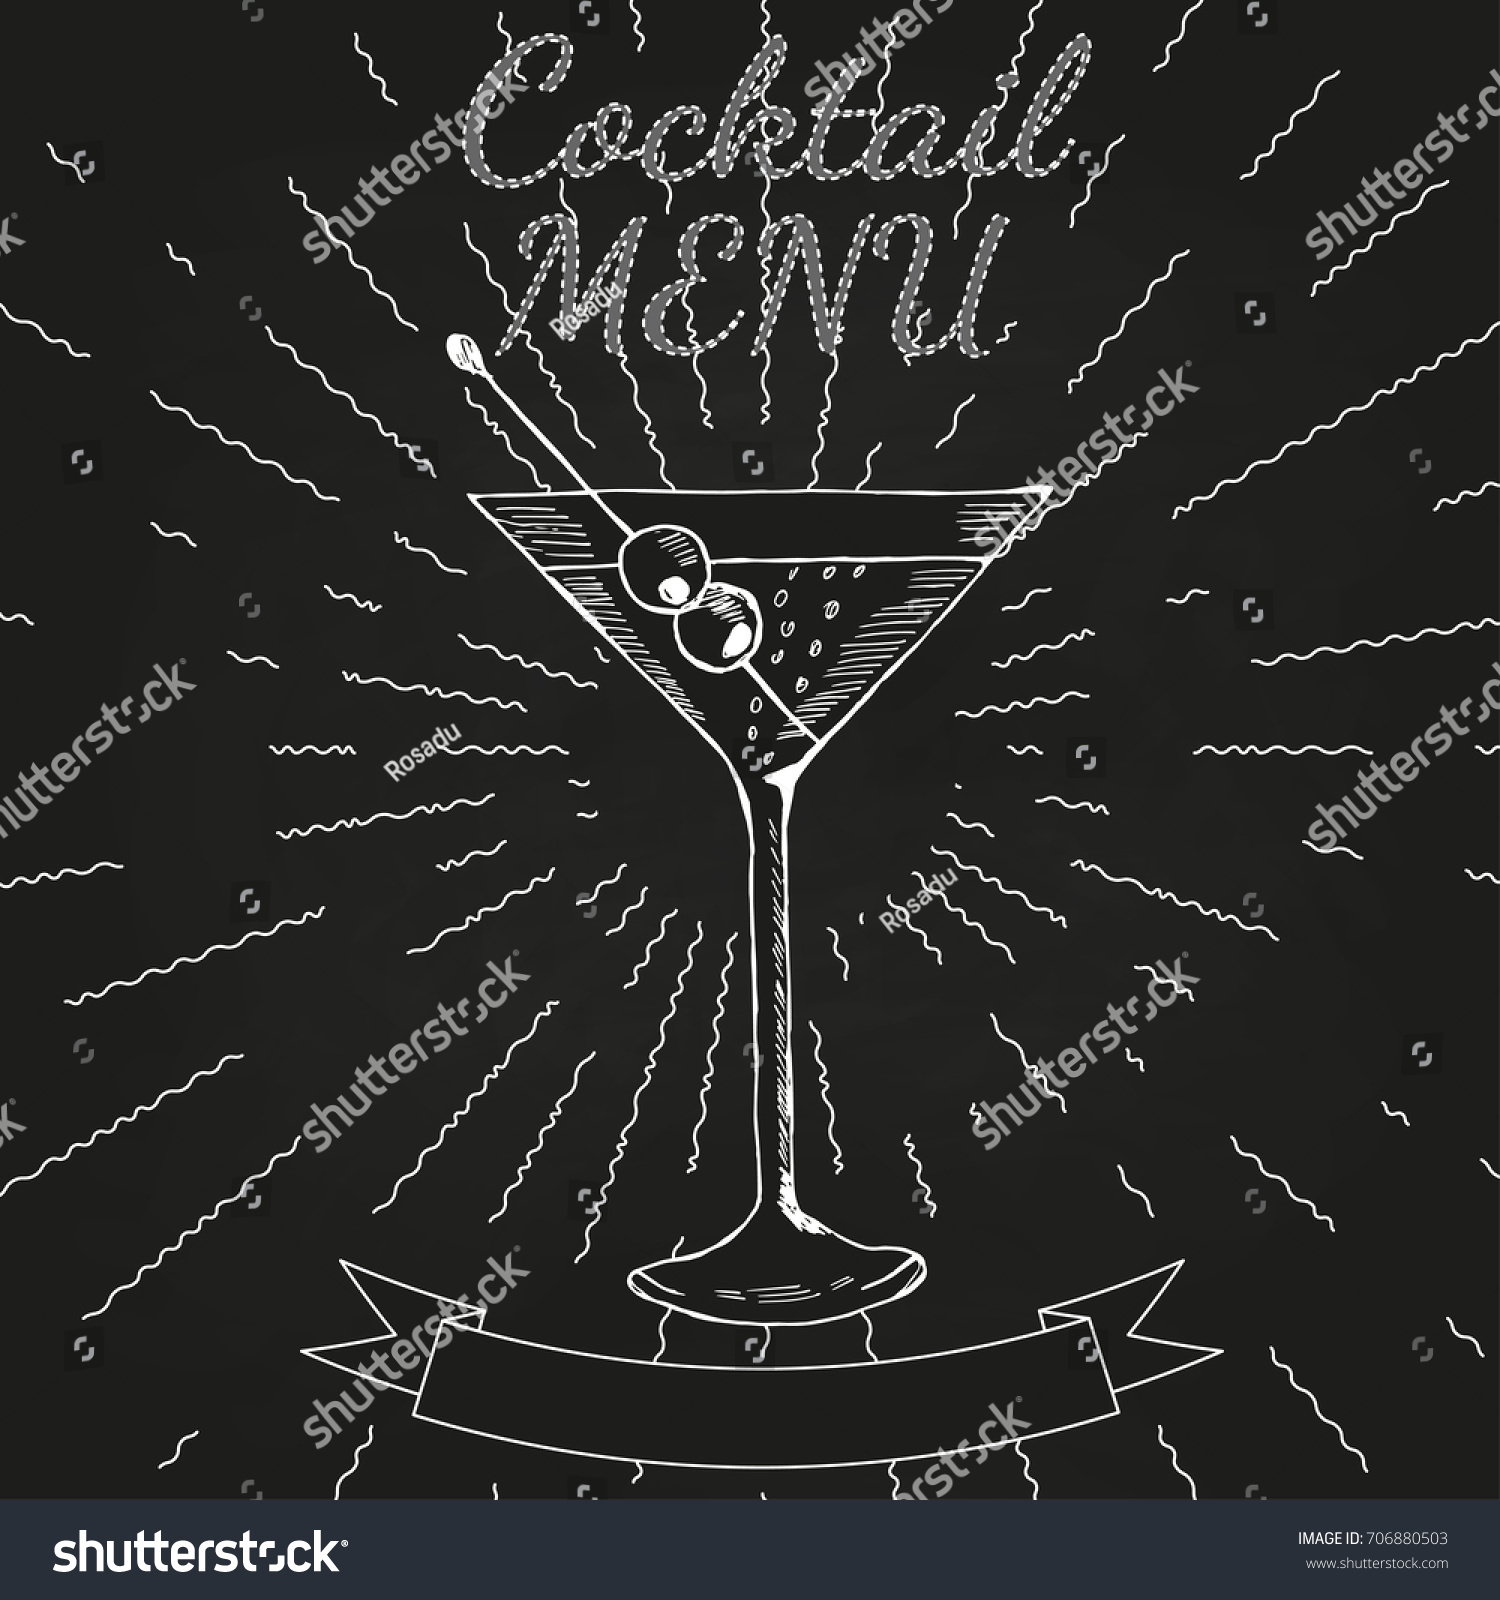 cocktails menu card vintage design template stock illustration